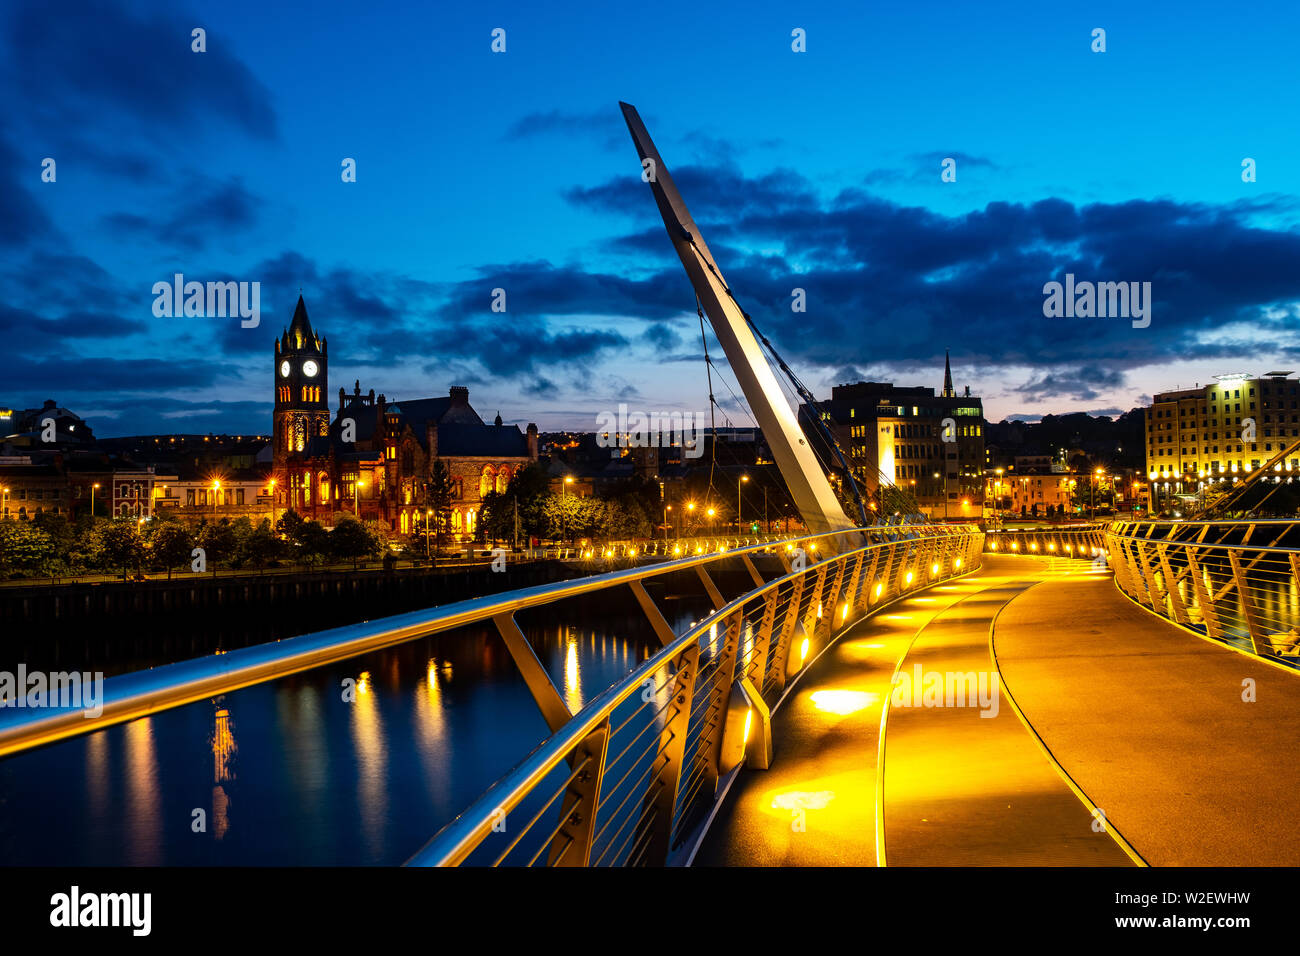 Derry, Northern Ireland. Illuminated Peace bridge in Derry Londonderry in Northern Ireland with city center at the background. Night cloudy sky, refle - Stock Image